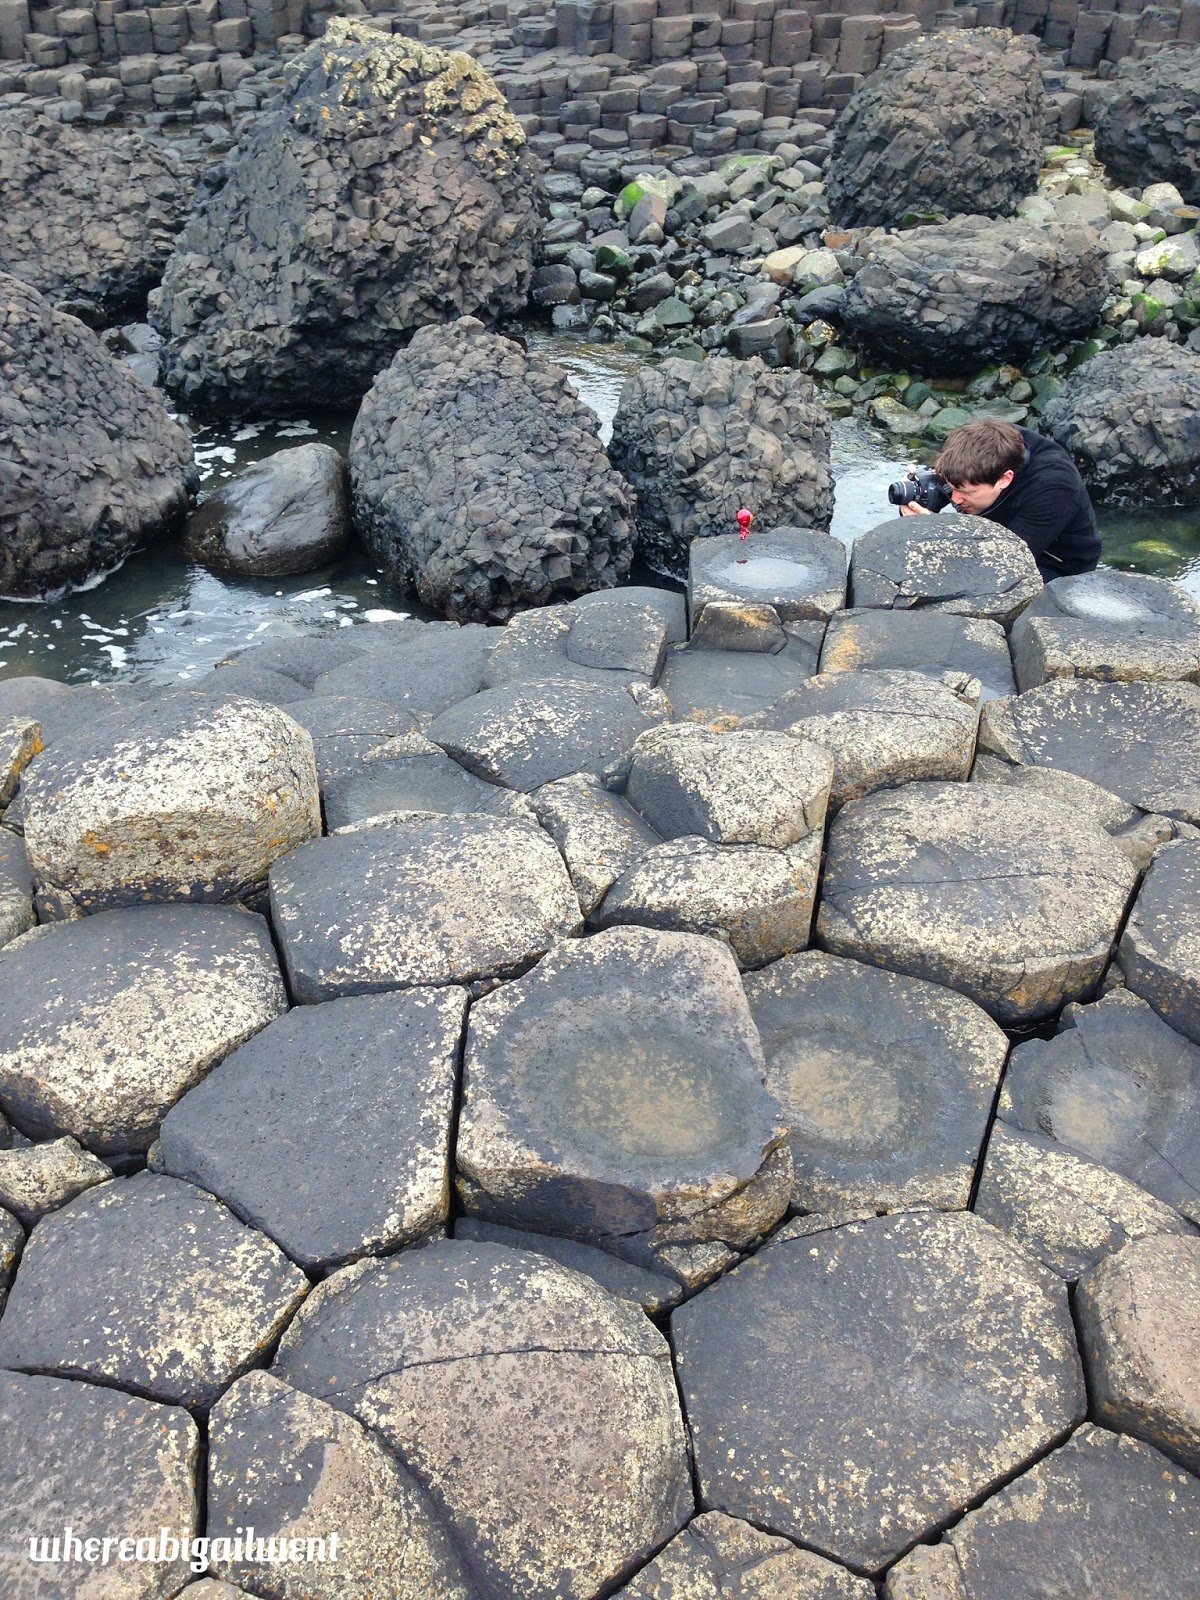 Mini Iron Man at the Giant's Causeway